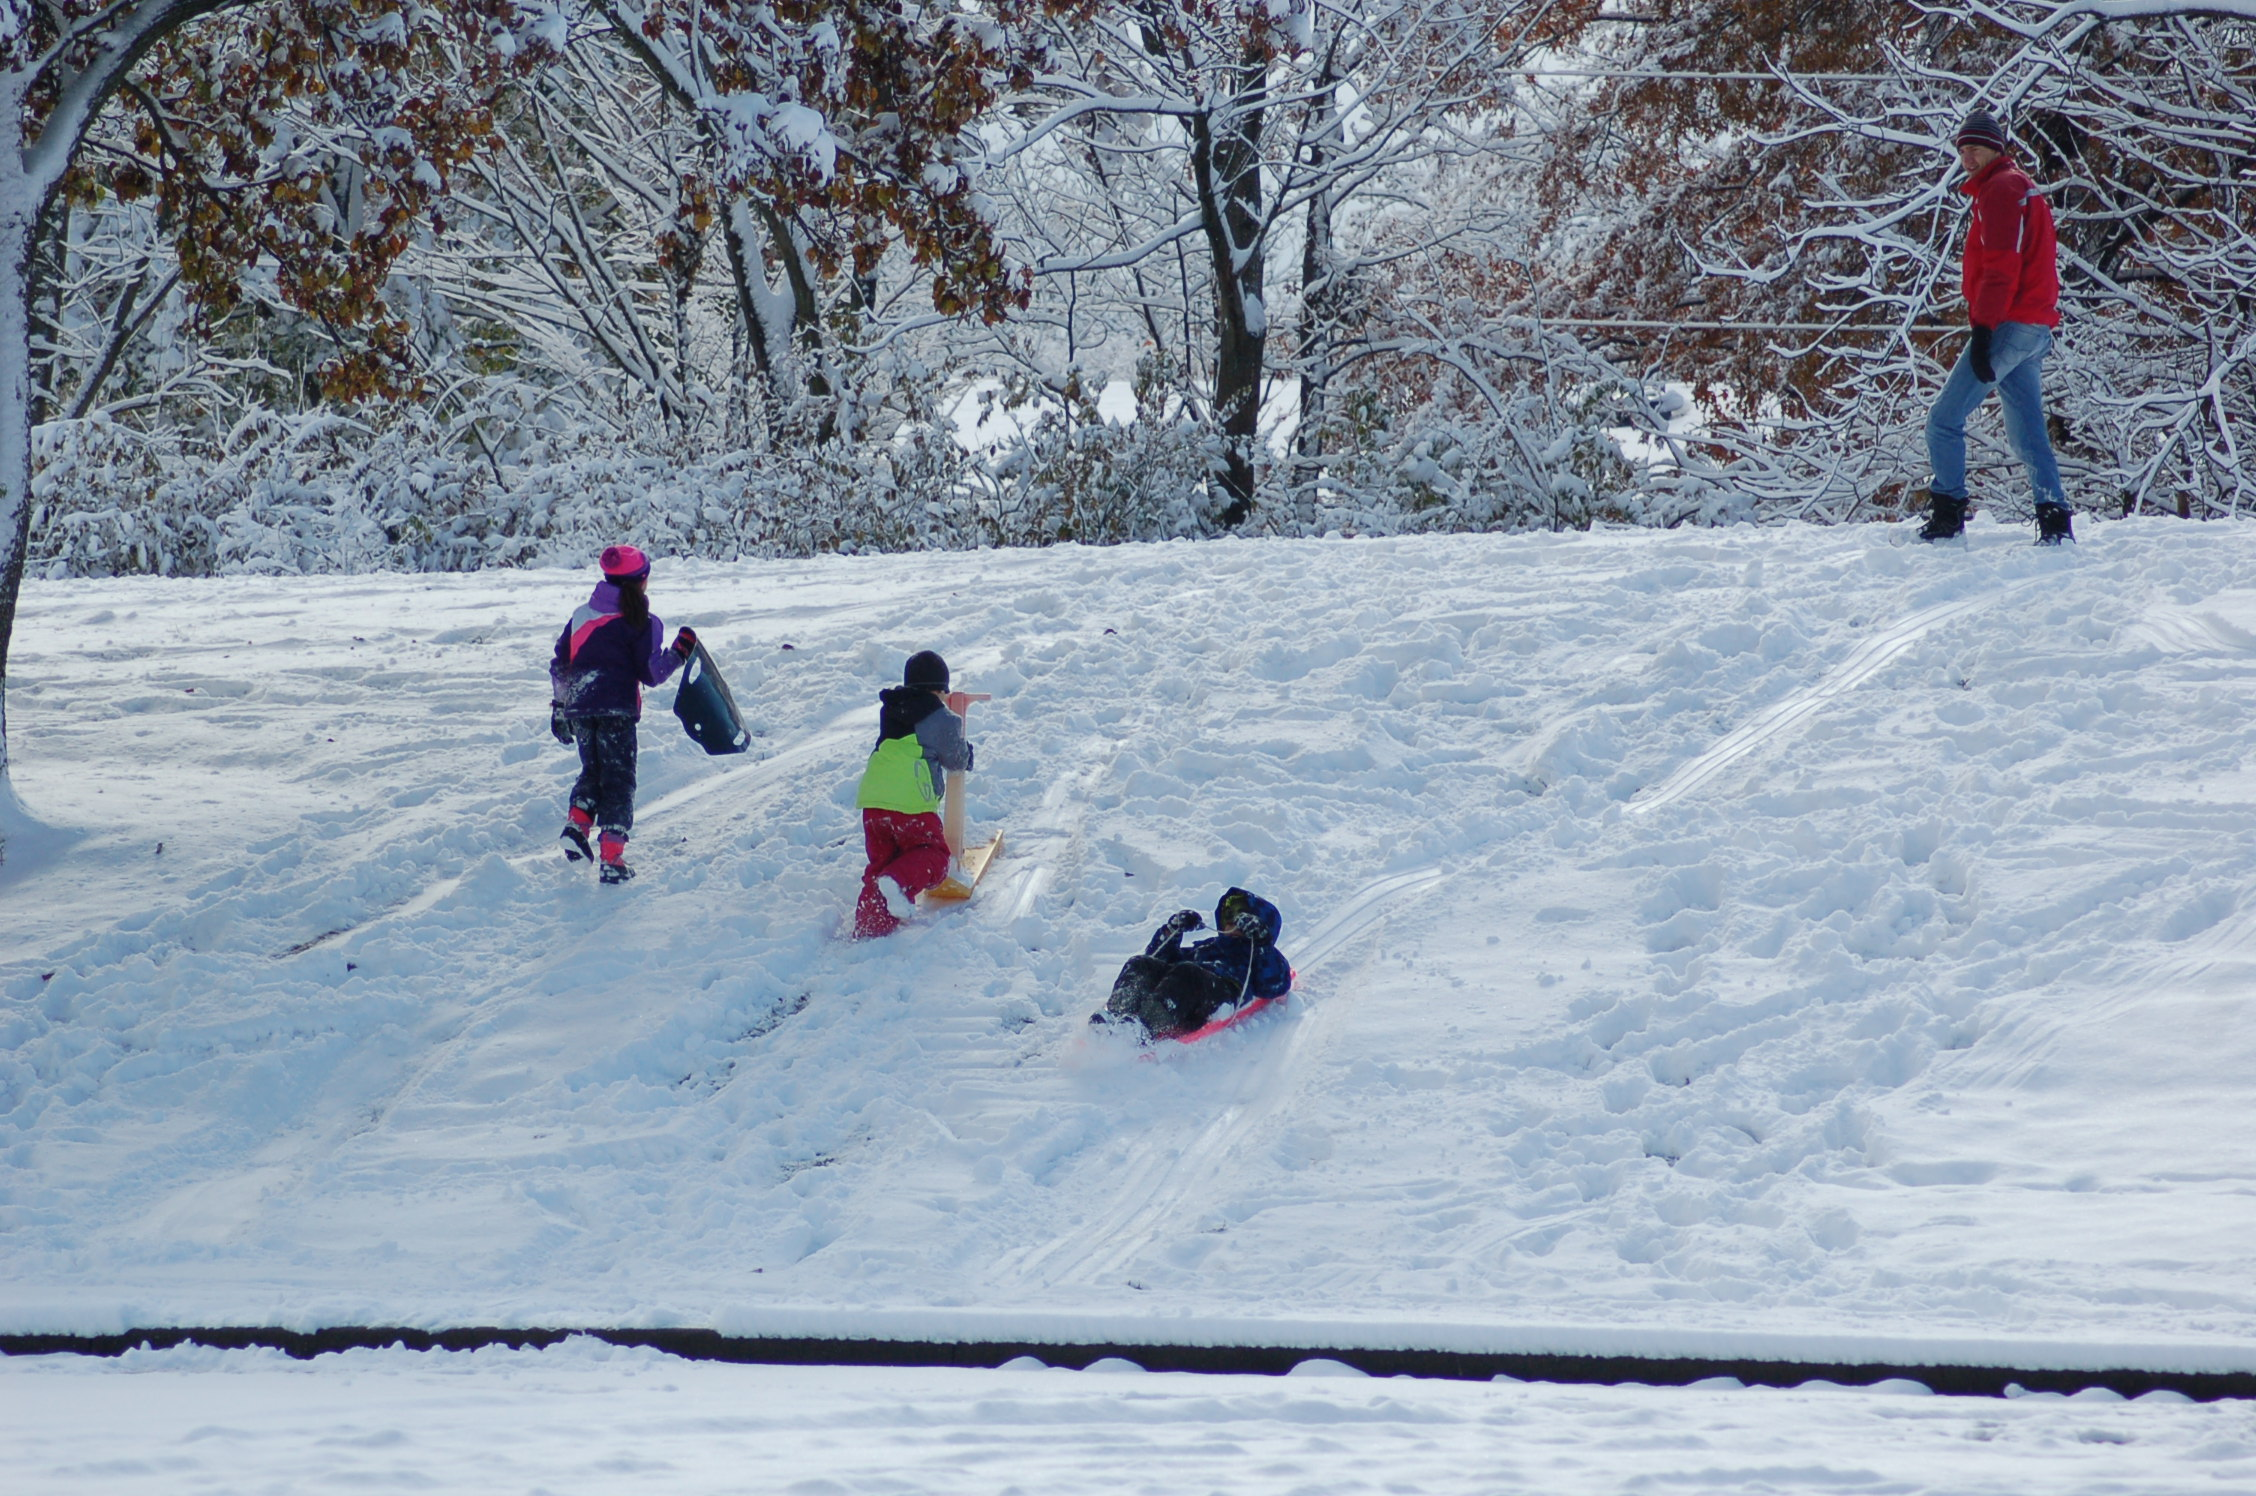 Children Sledding on Hill